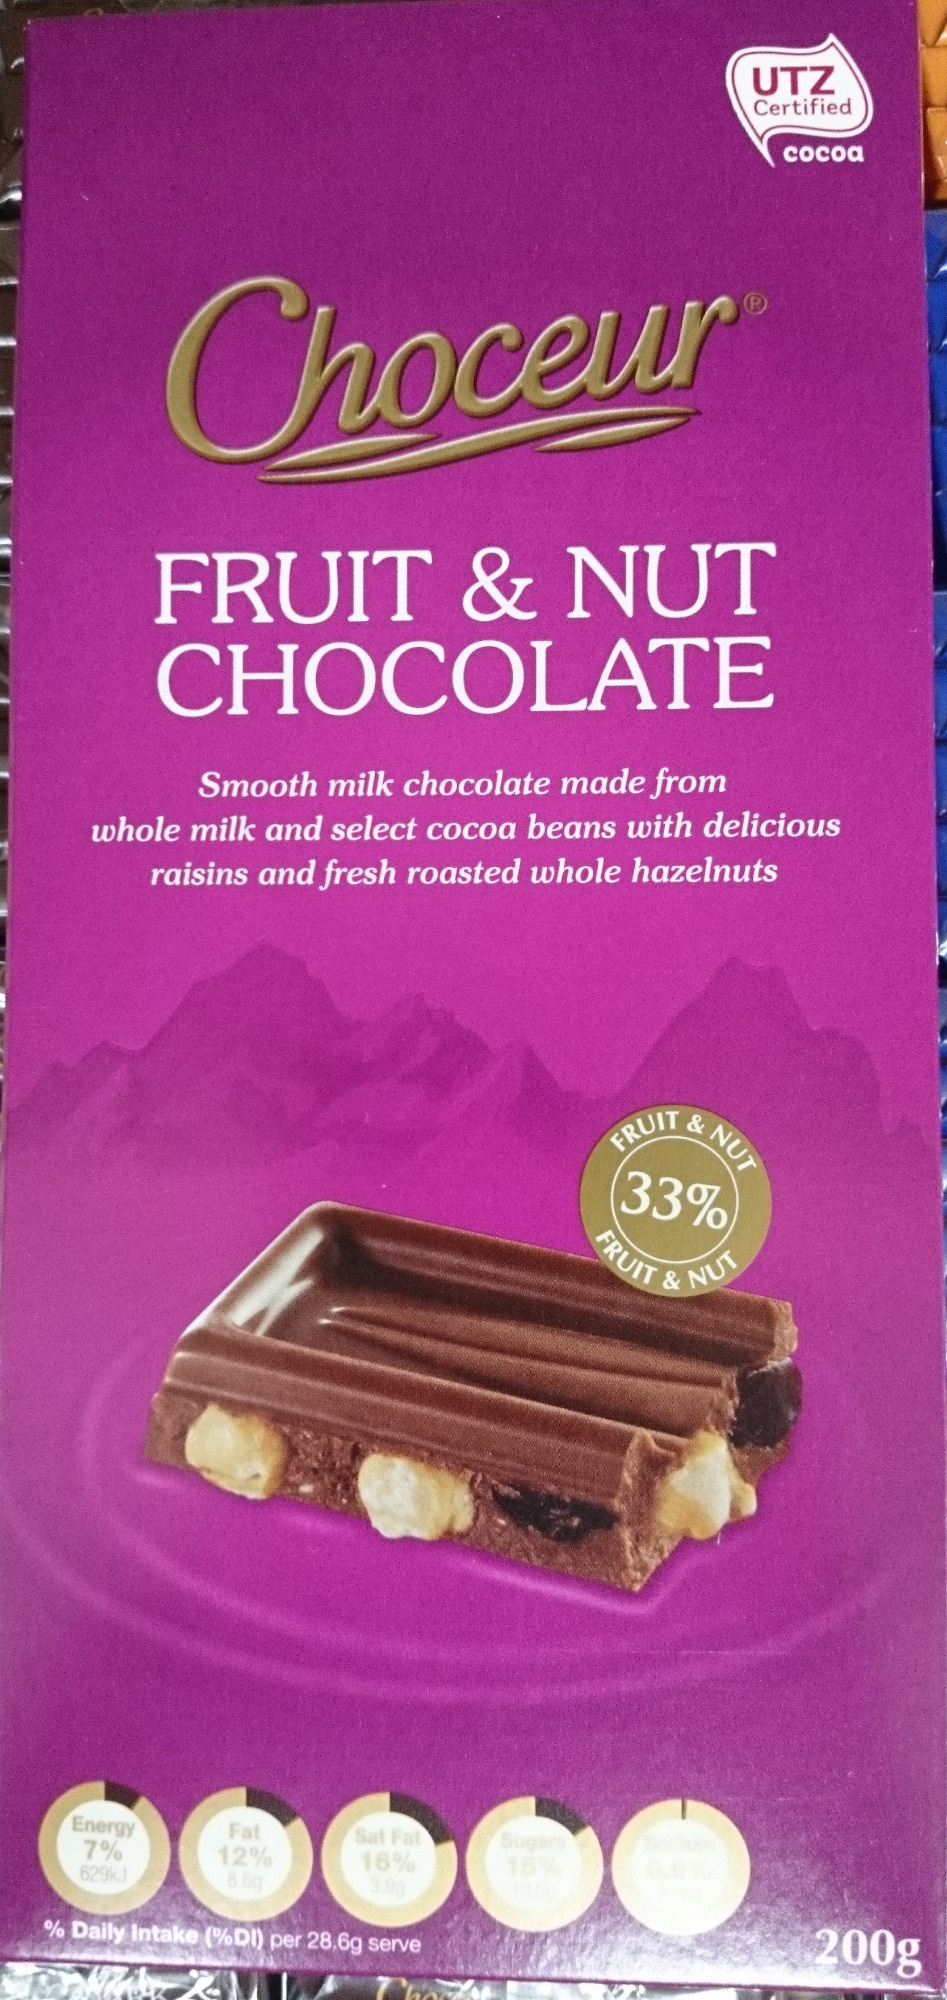 Choceur Fruit and Nut Chocolate - Product